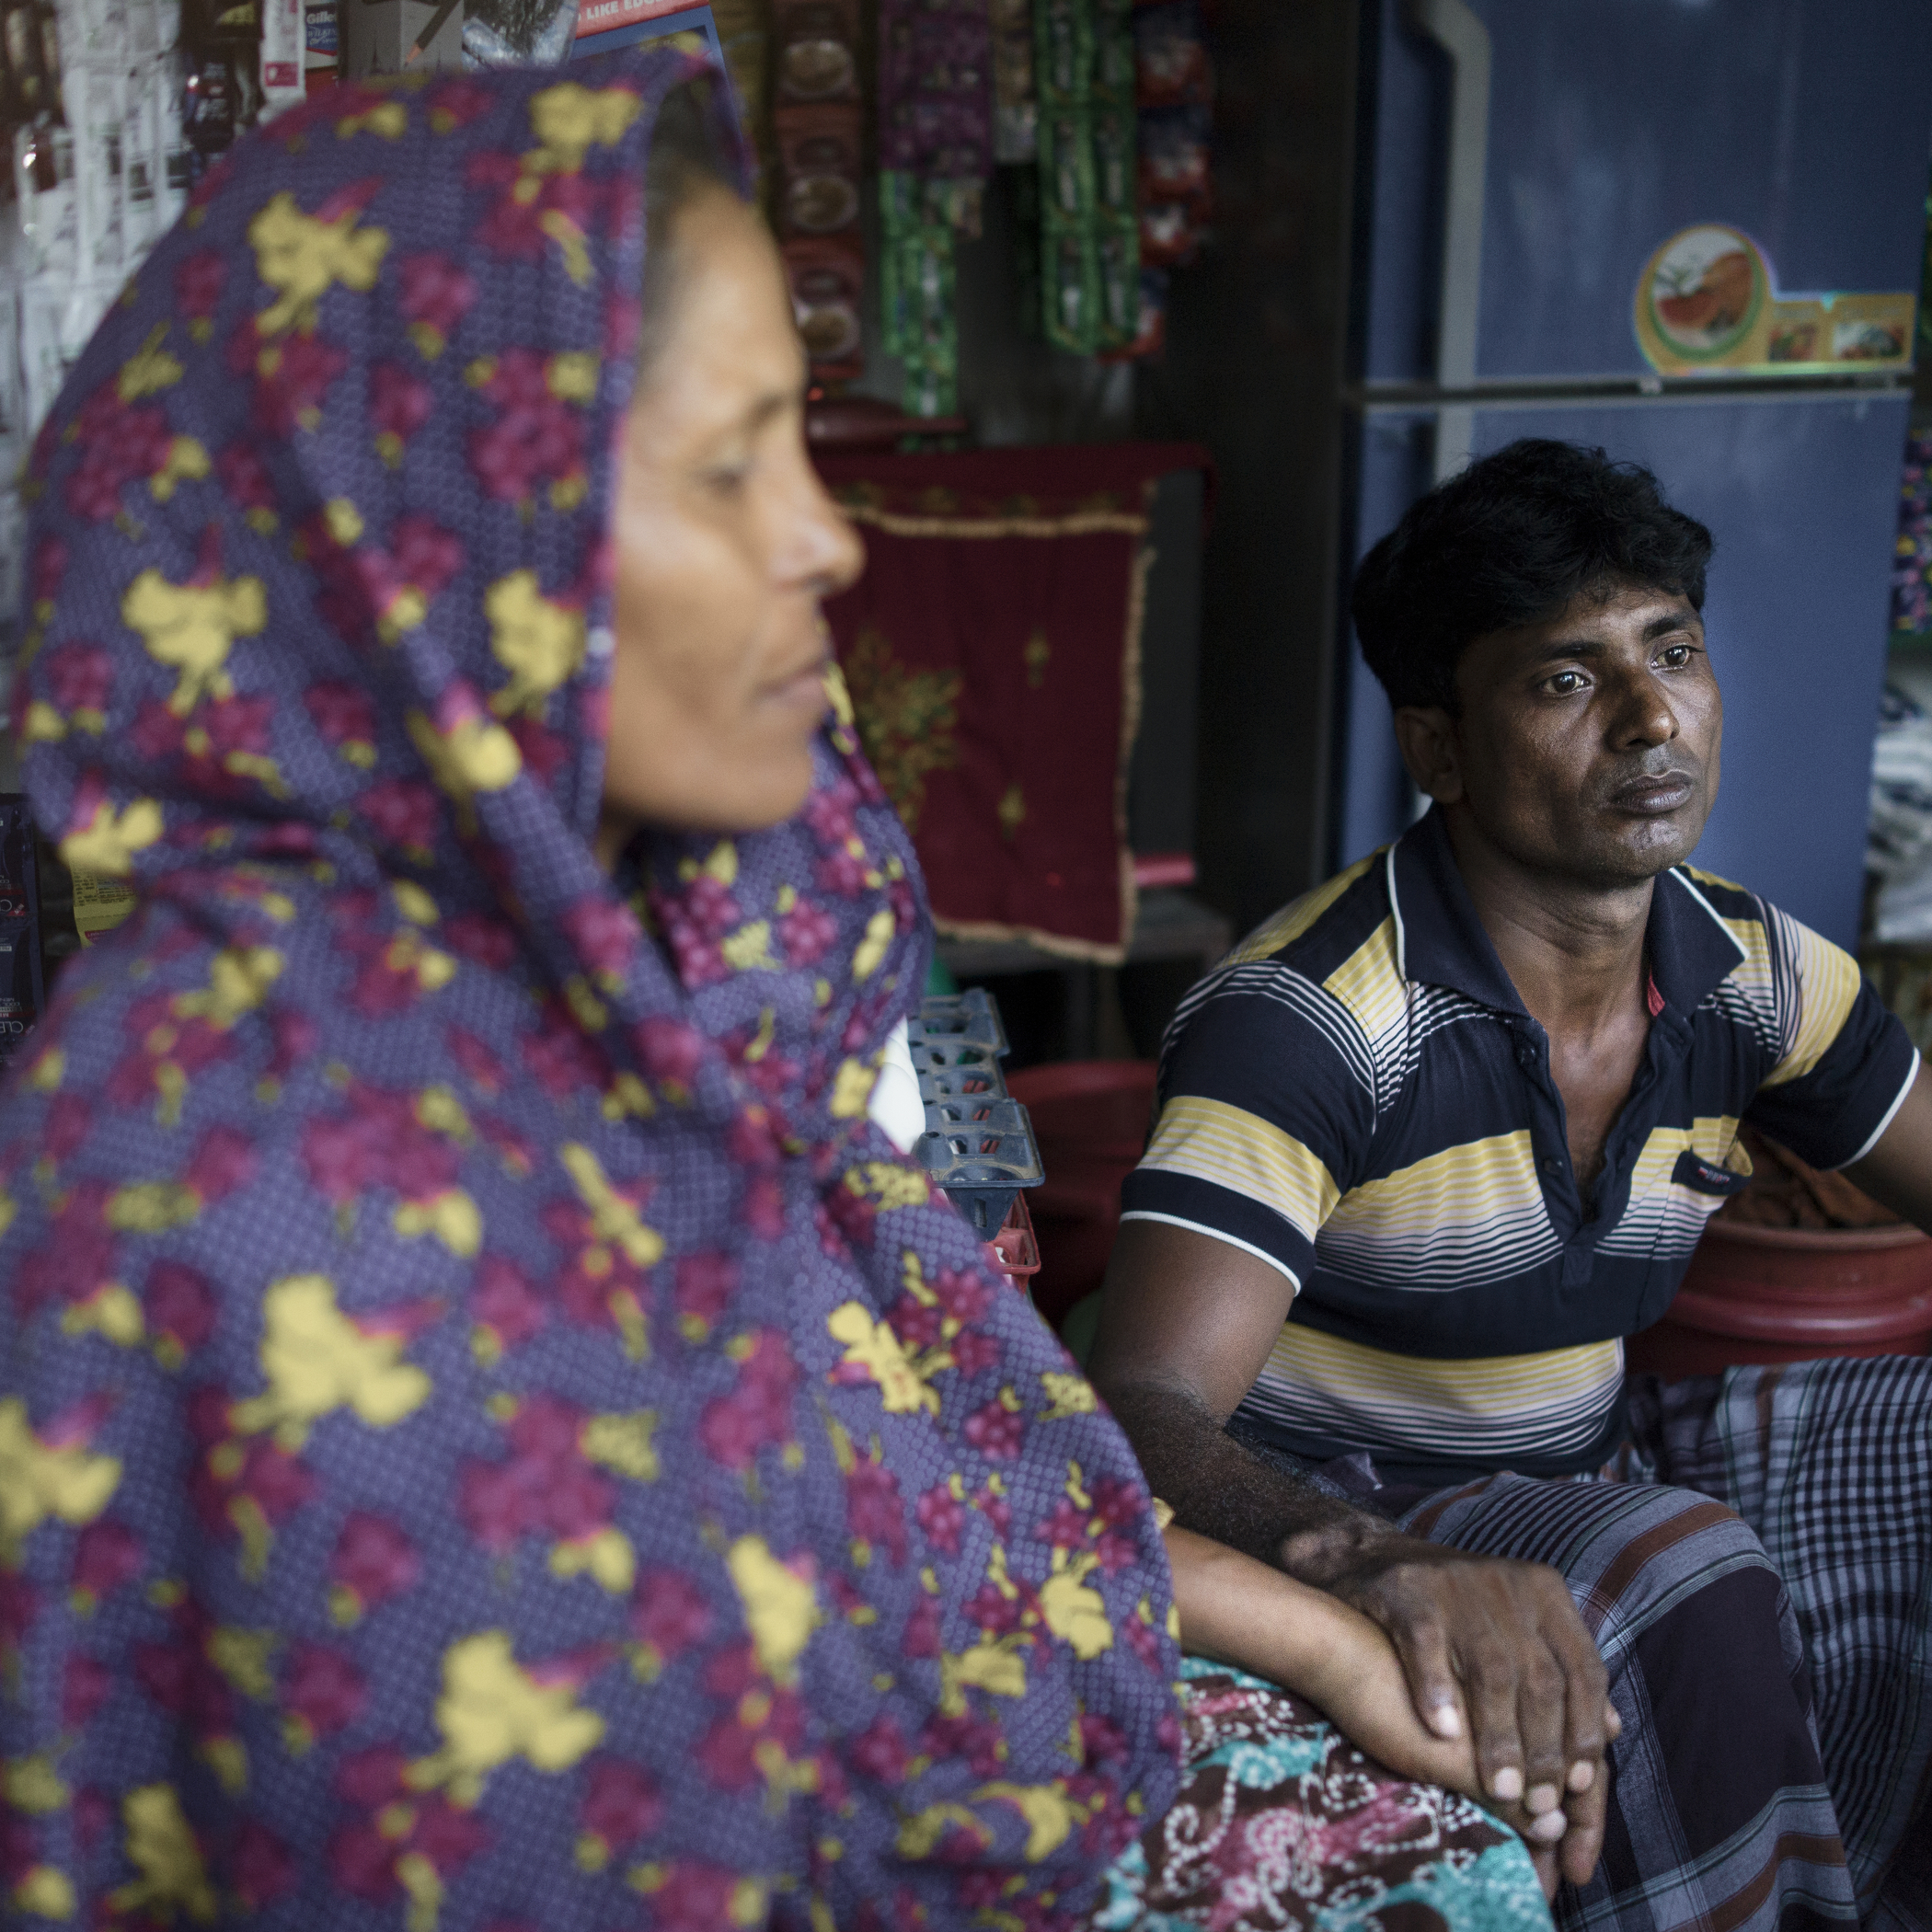 Abdul Alim has to remarry for his children's welfare after his wife's death in Rana Plaza incident